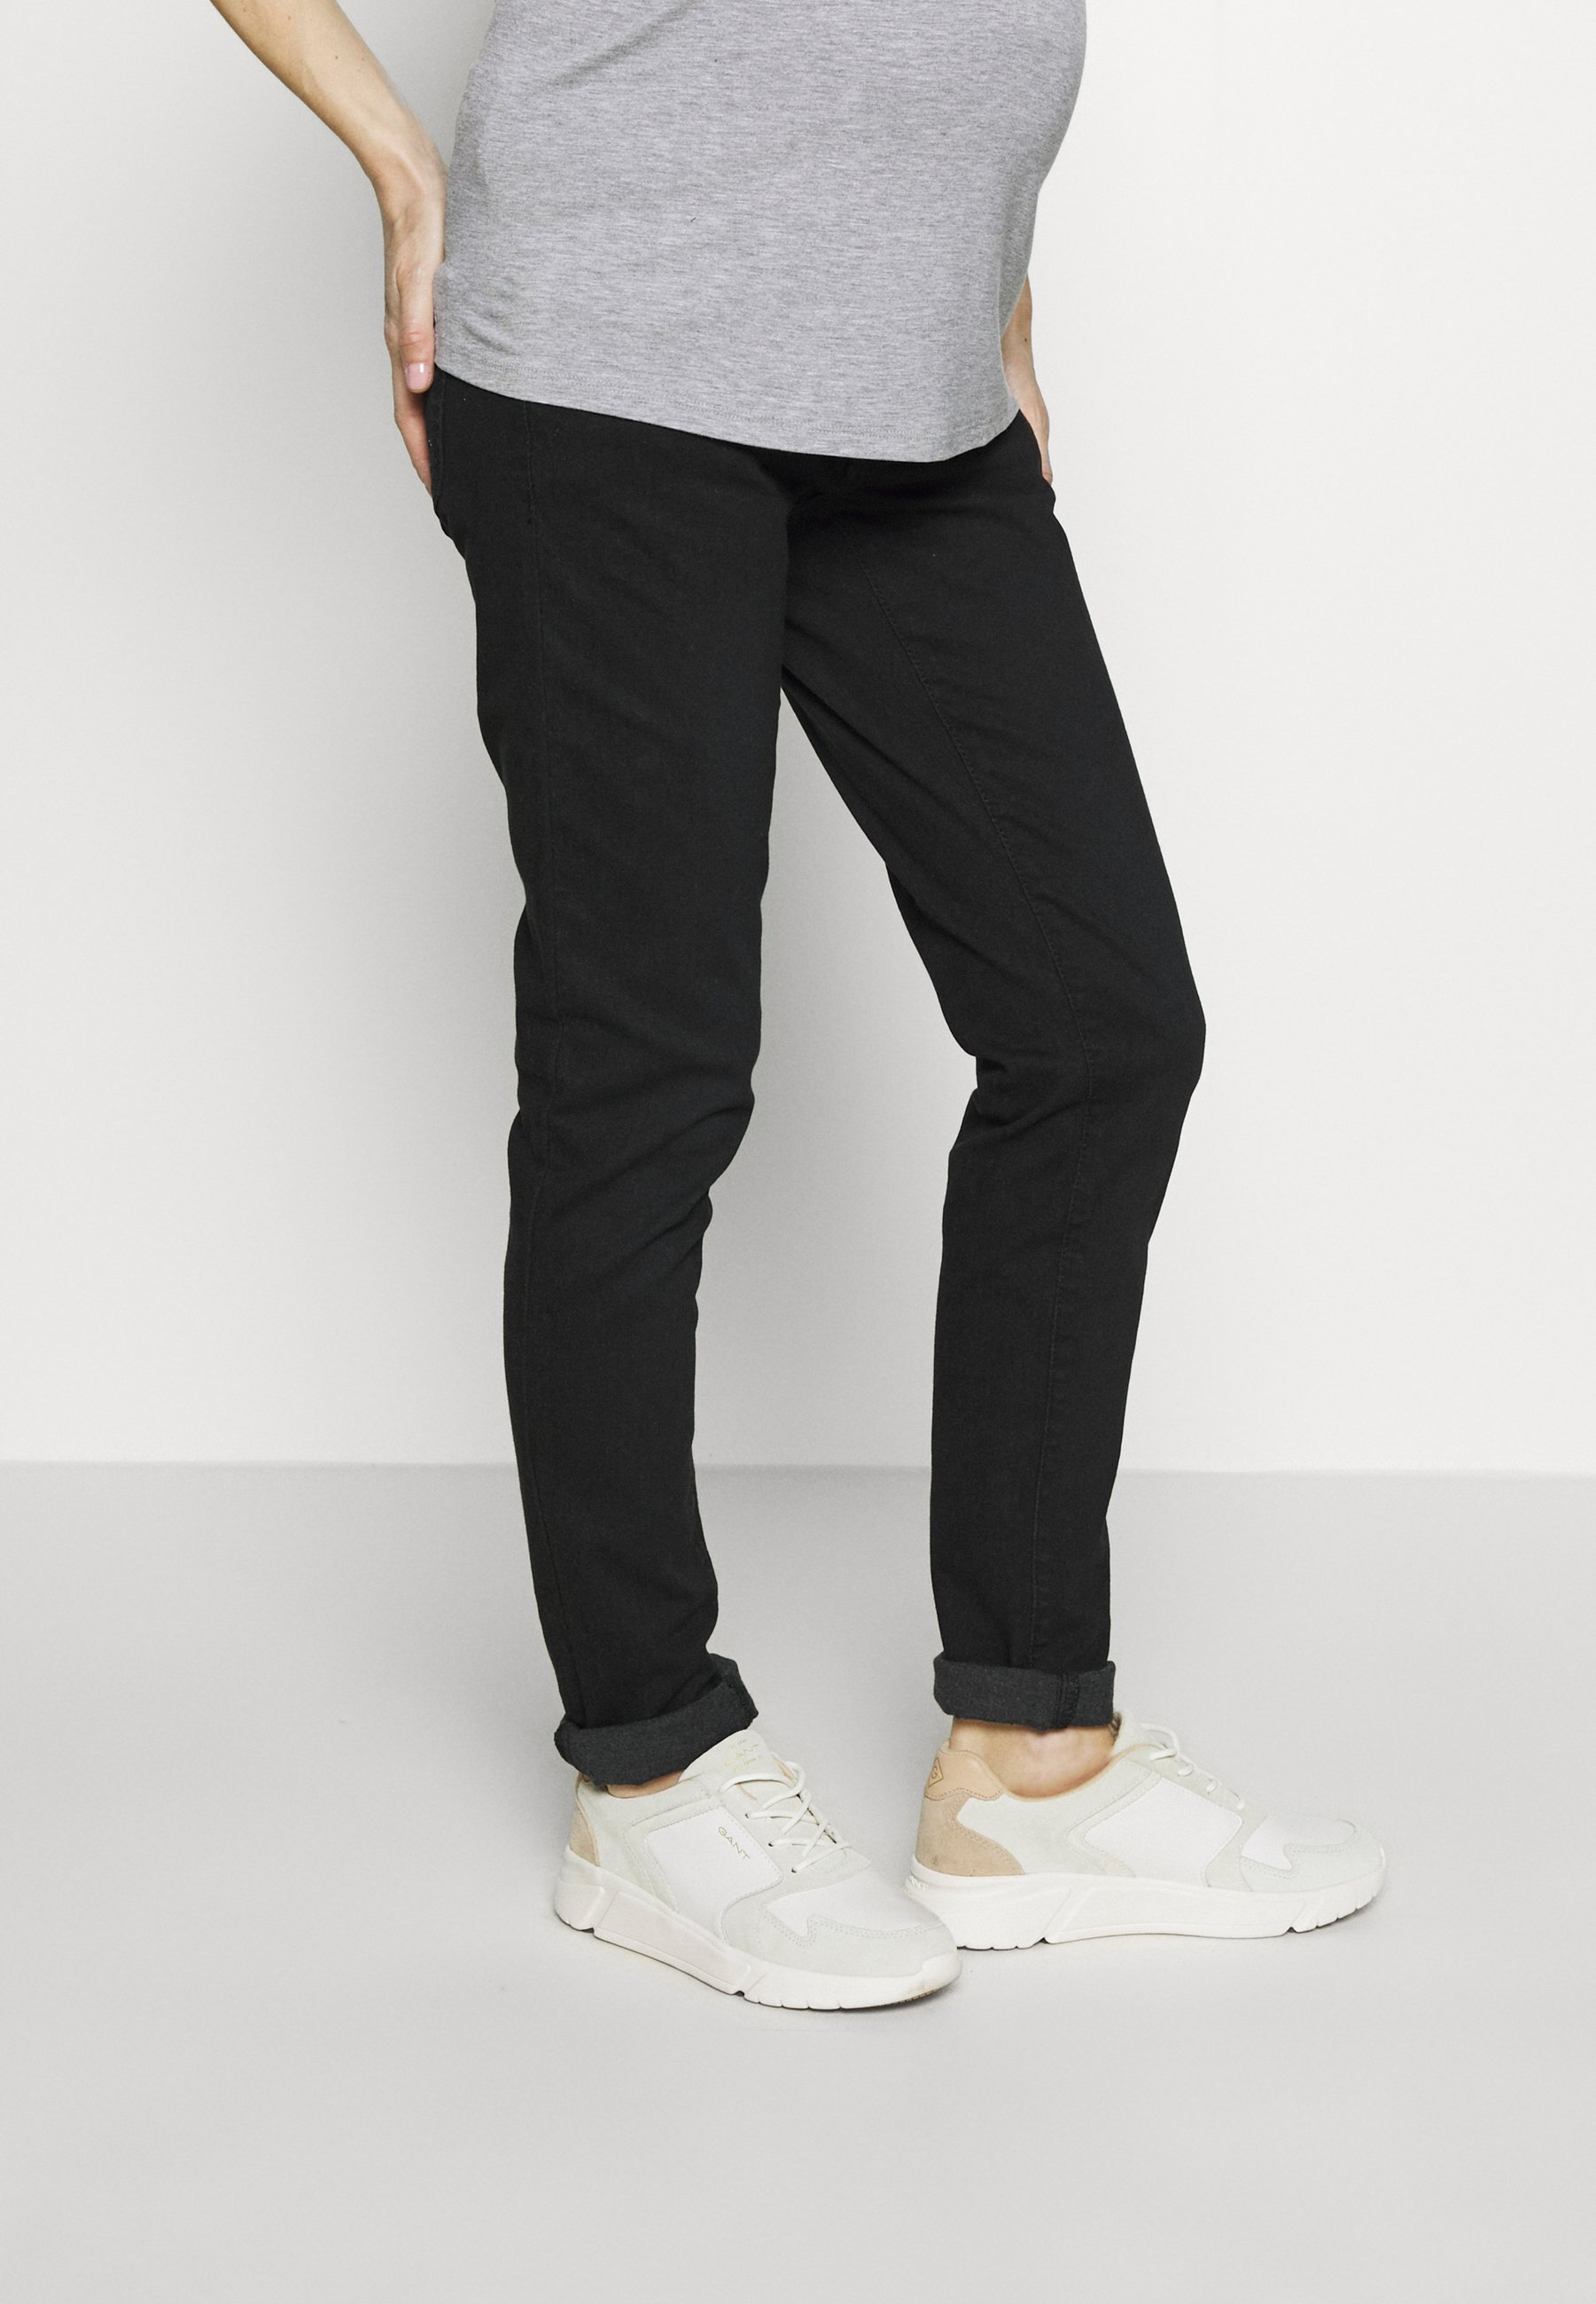 Collections Women's Clothing Noppies AVI EVERYDAY Jeans Skinny Fit black UGPadt2mB